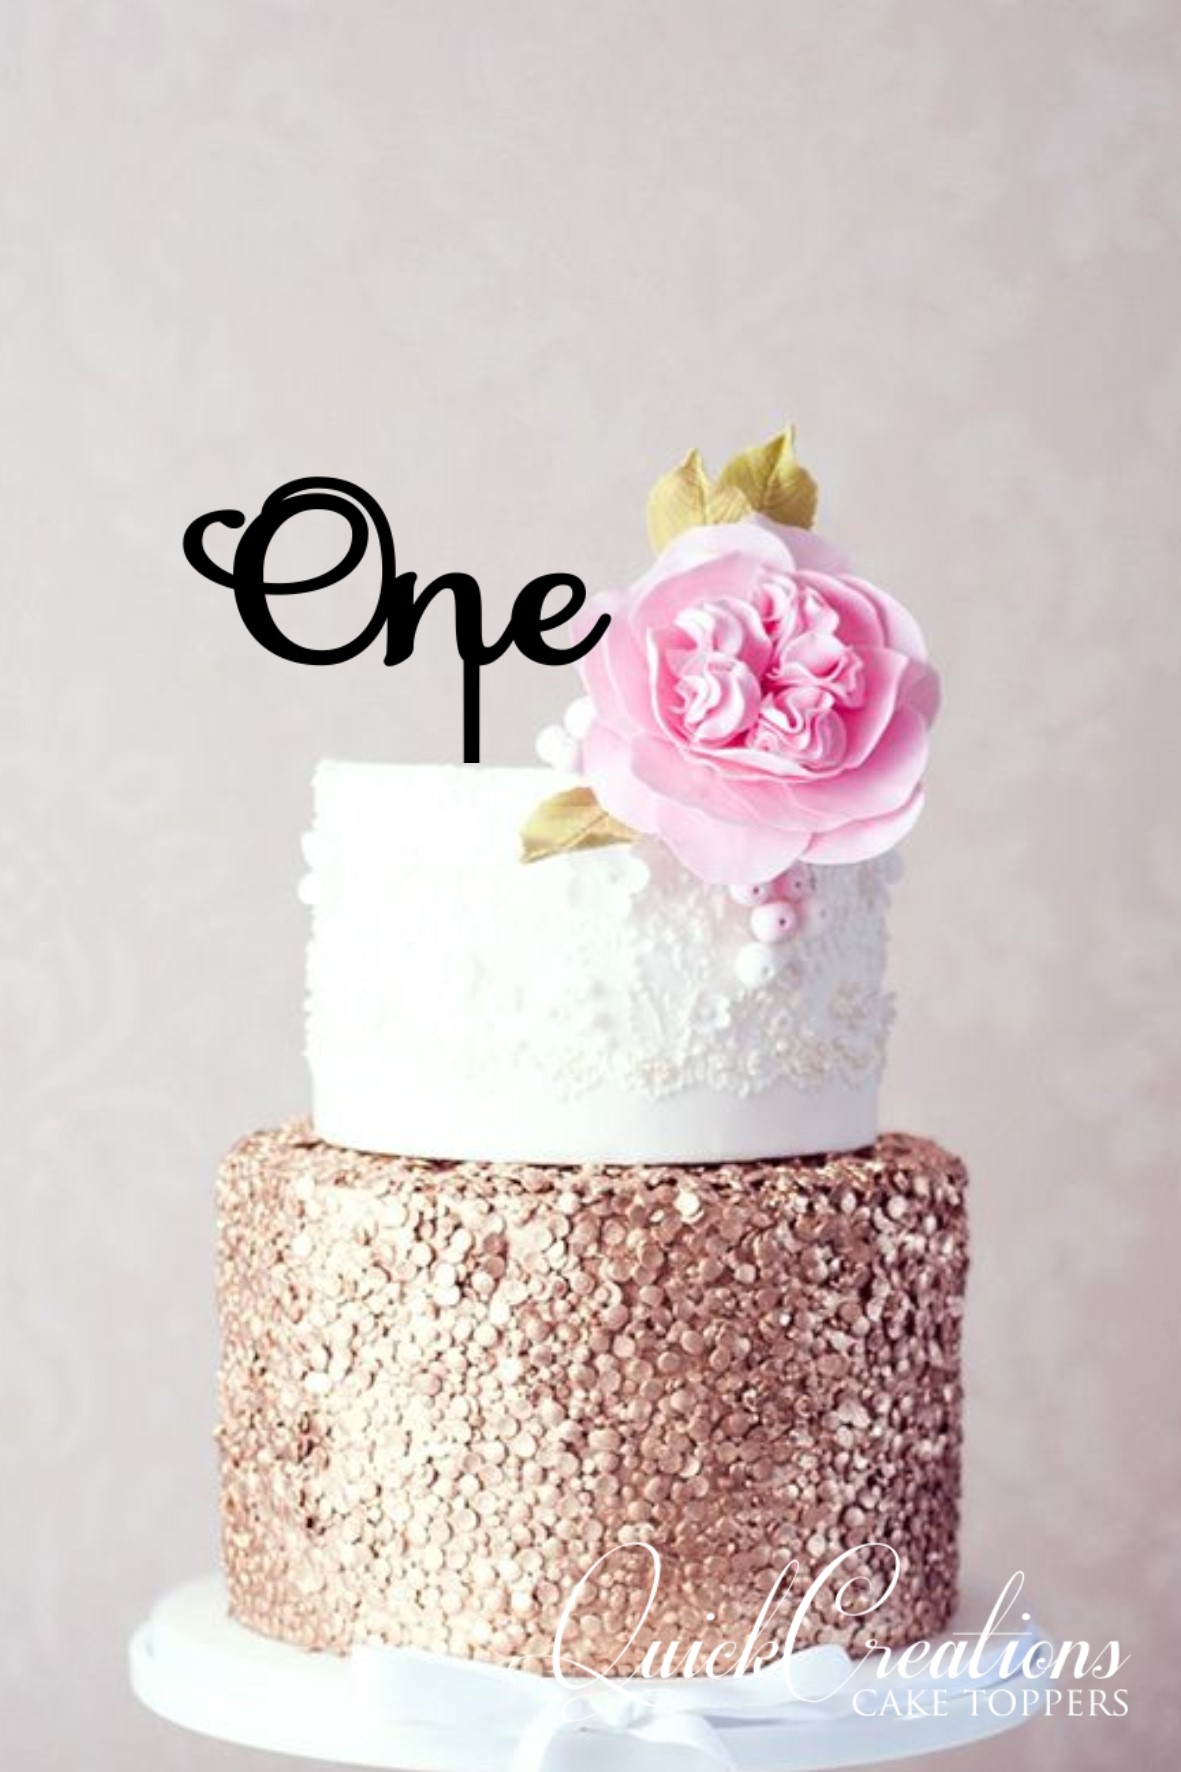 Quick Creations Cake Topper - One v2